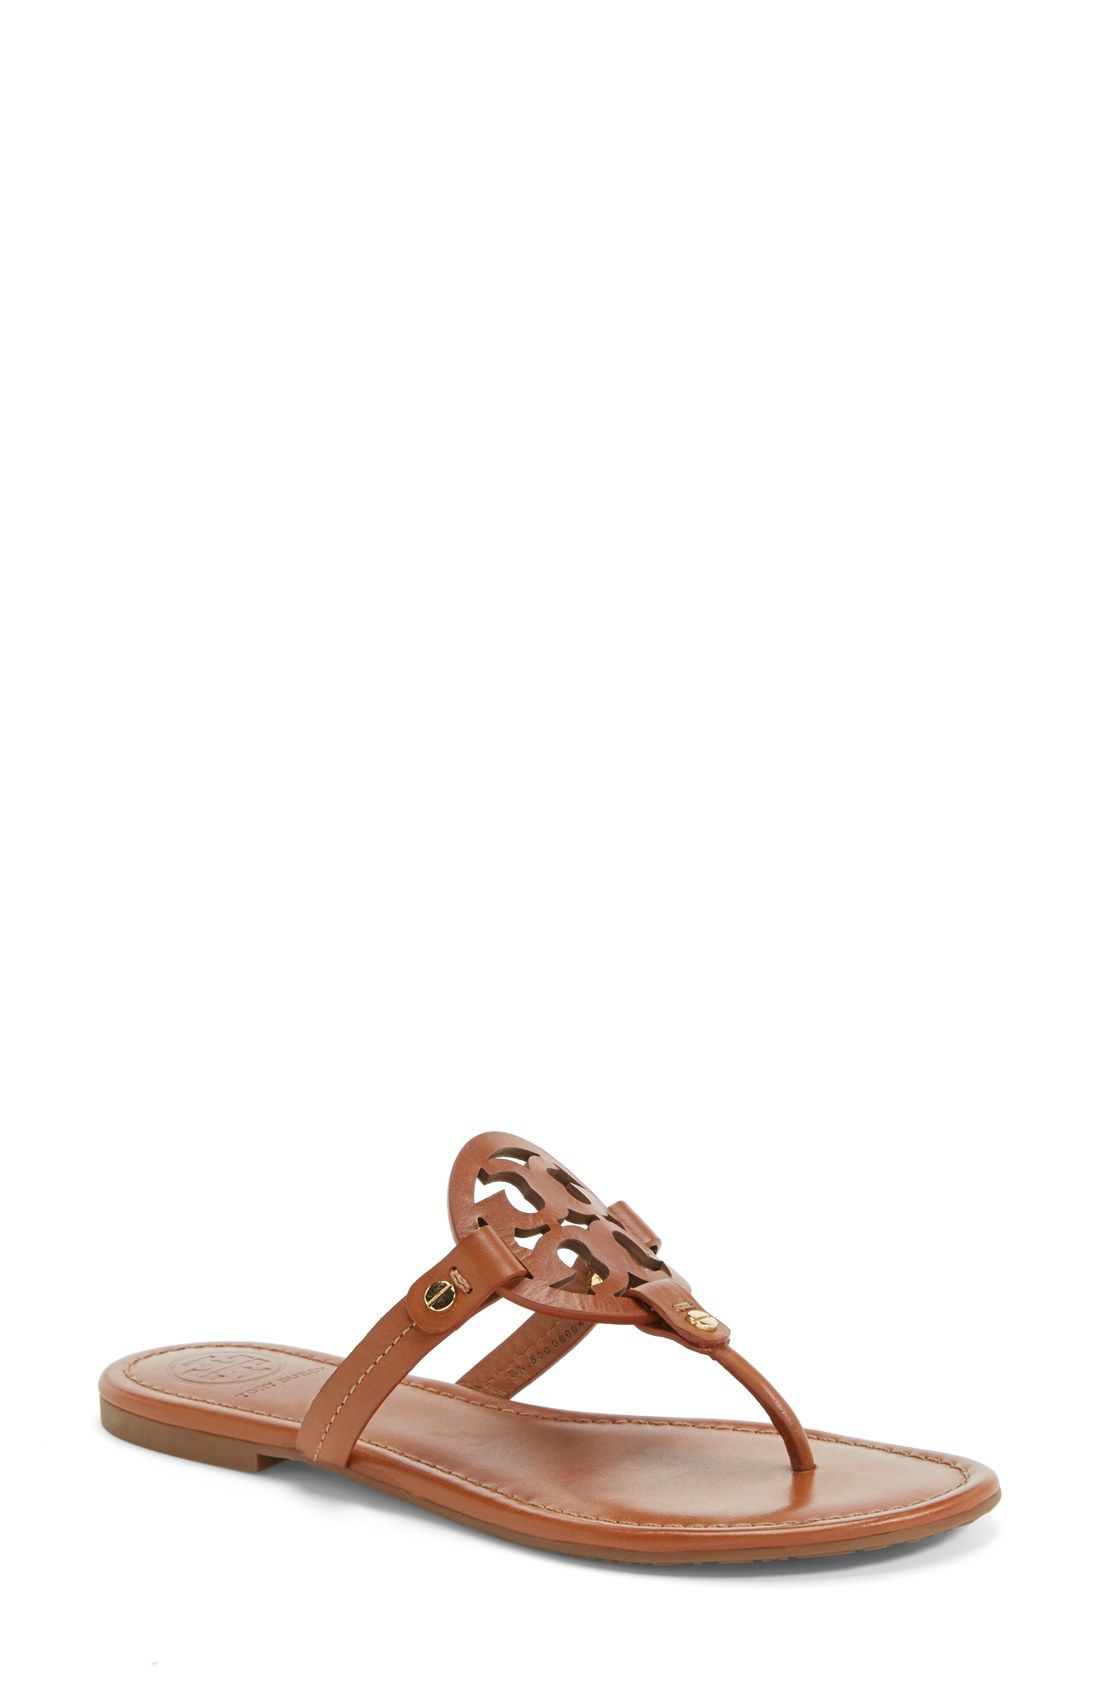 89724cf22888 Tory Burch  Miller  Flip Flop (Women) REALLY WANT AND NEED A GOOD NEUTRAL  SANDAL